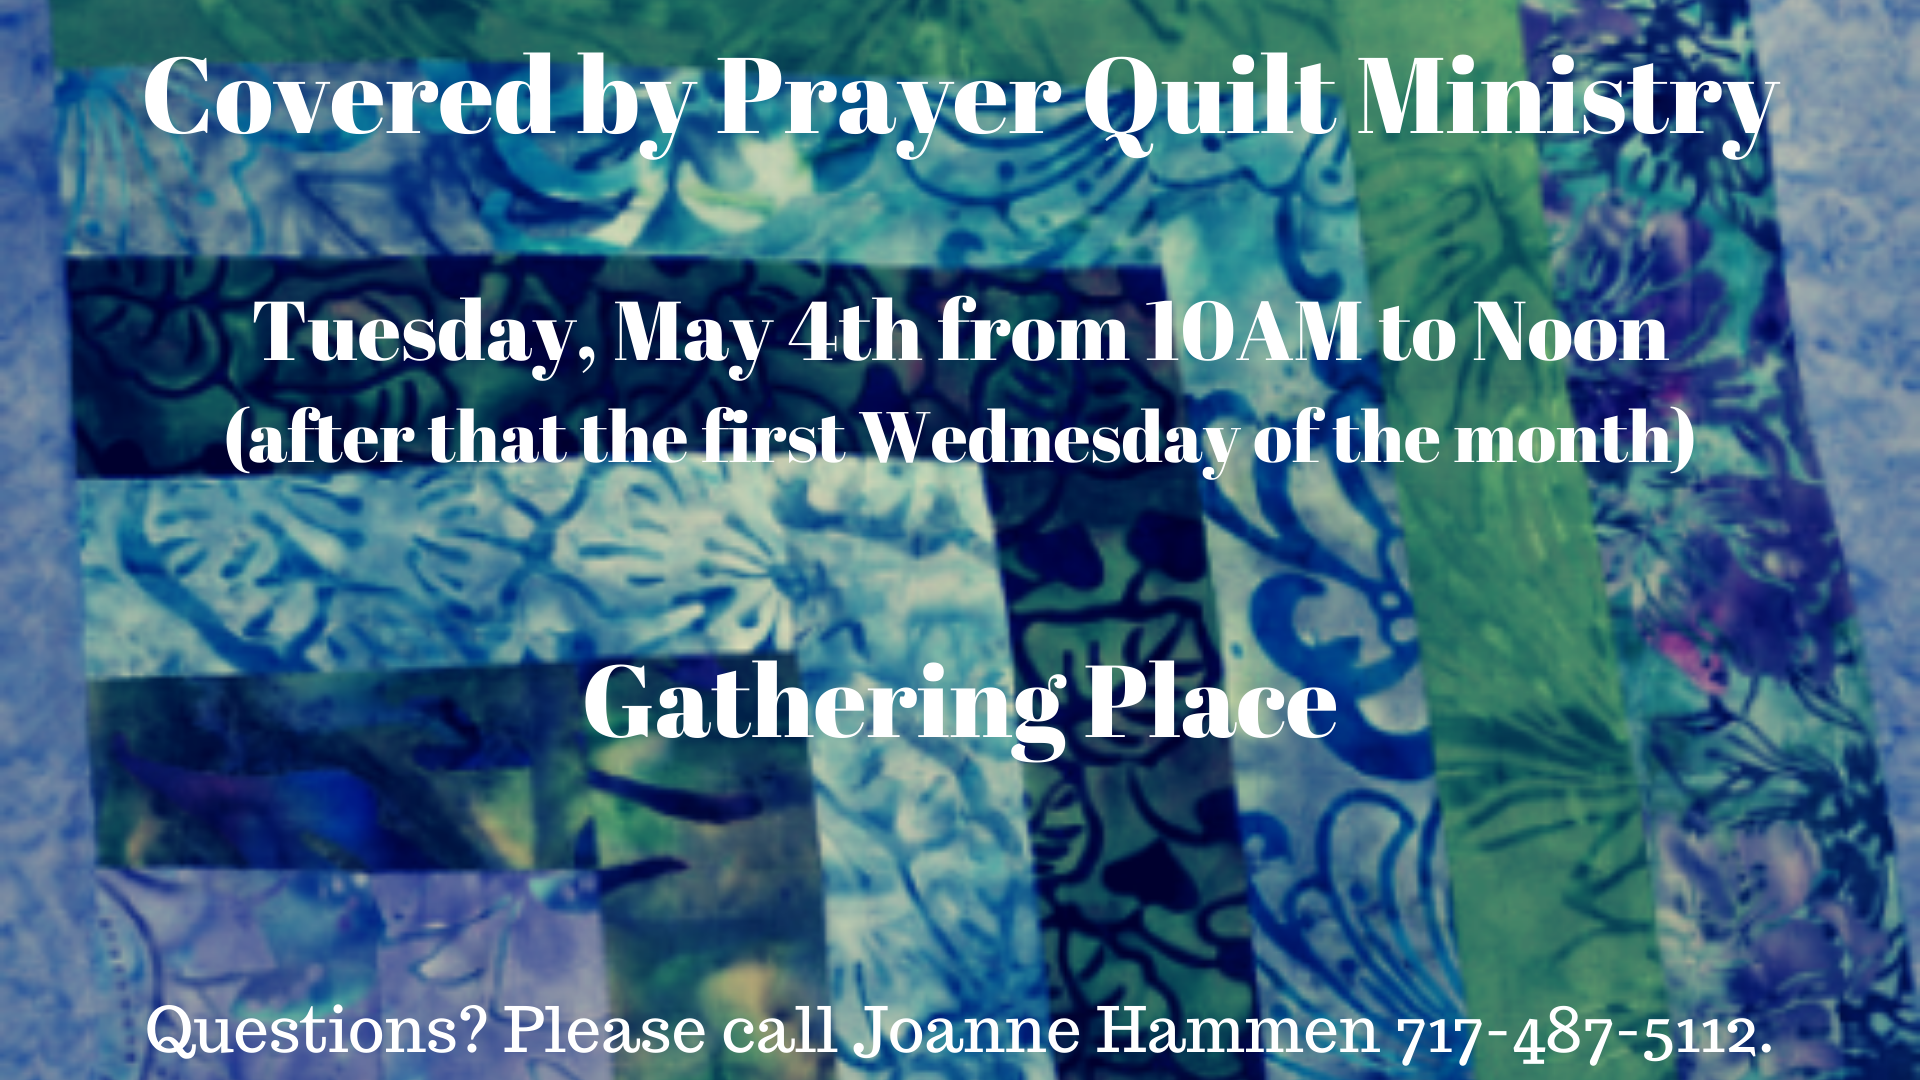 Covered by Prayer Quilt Ministry